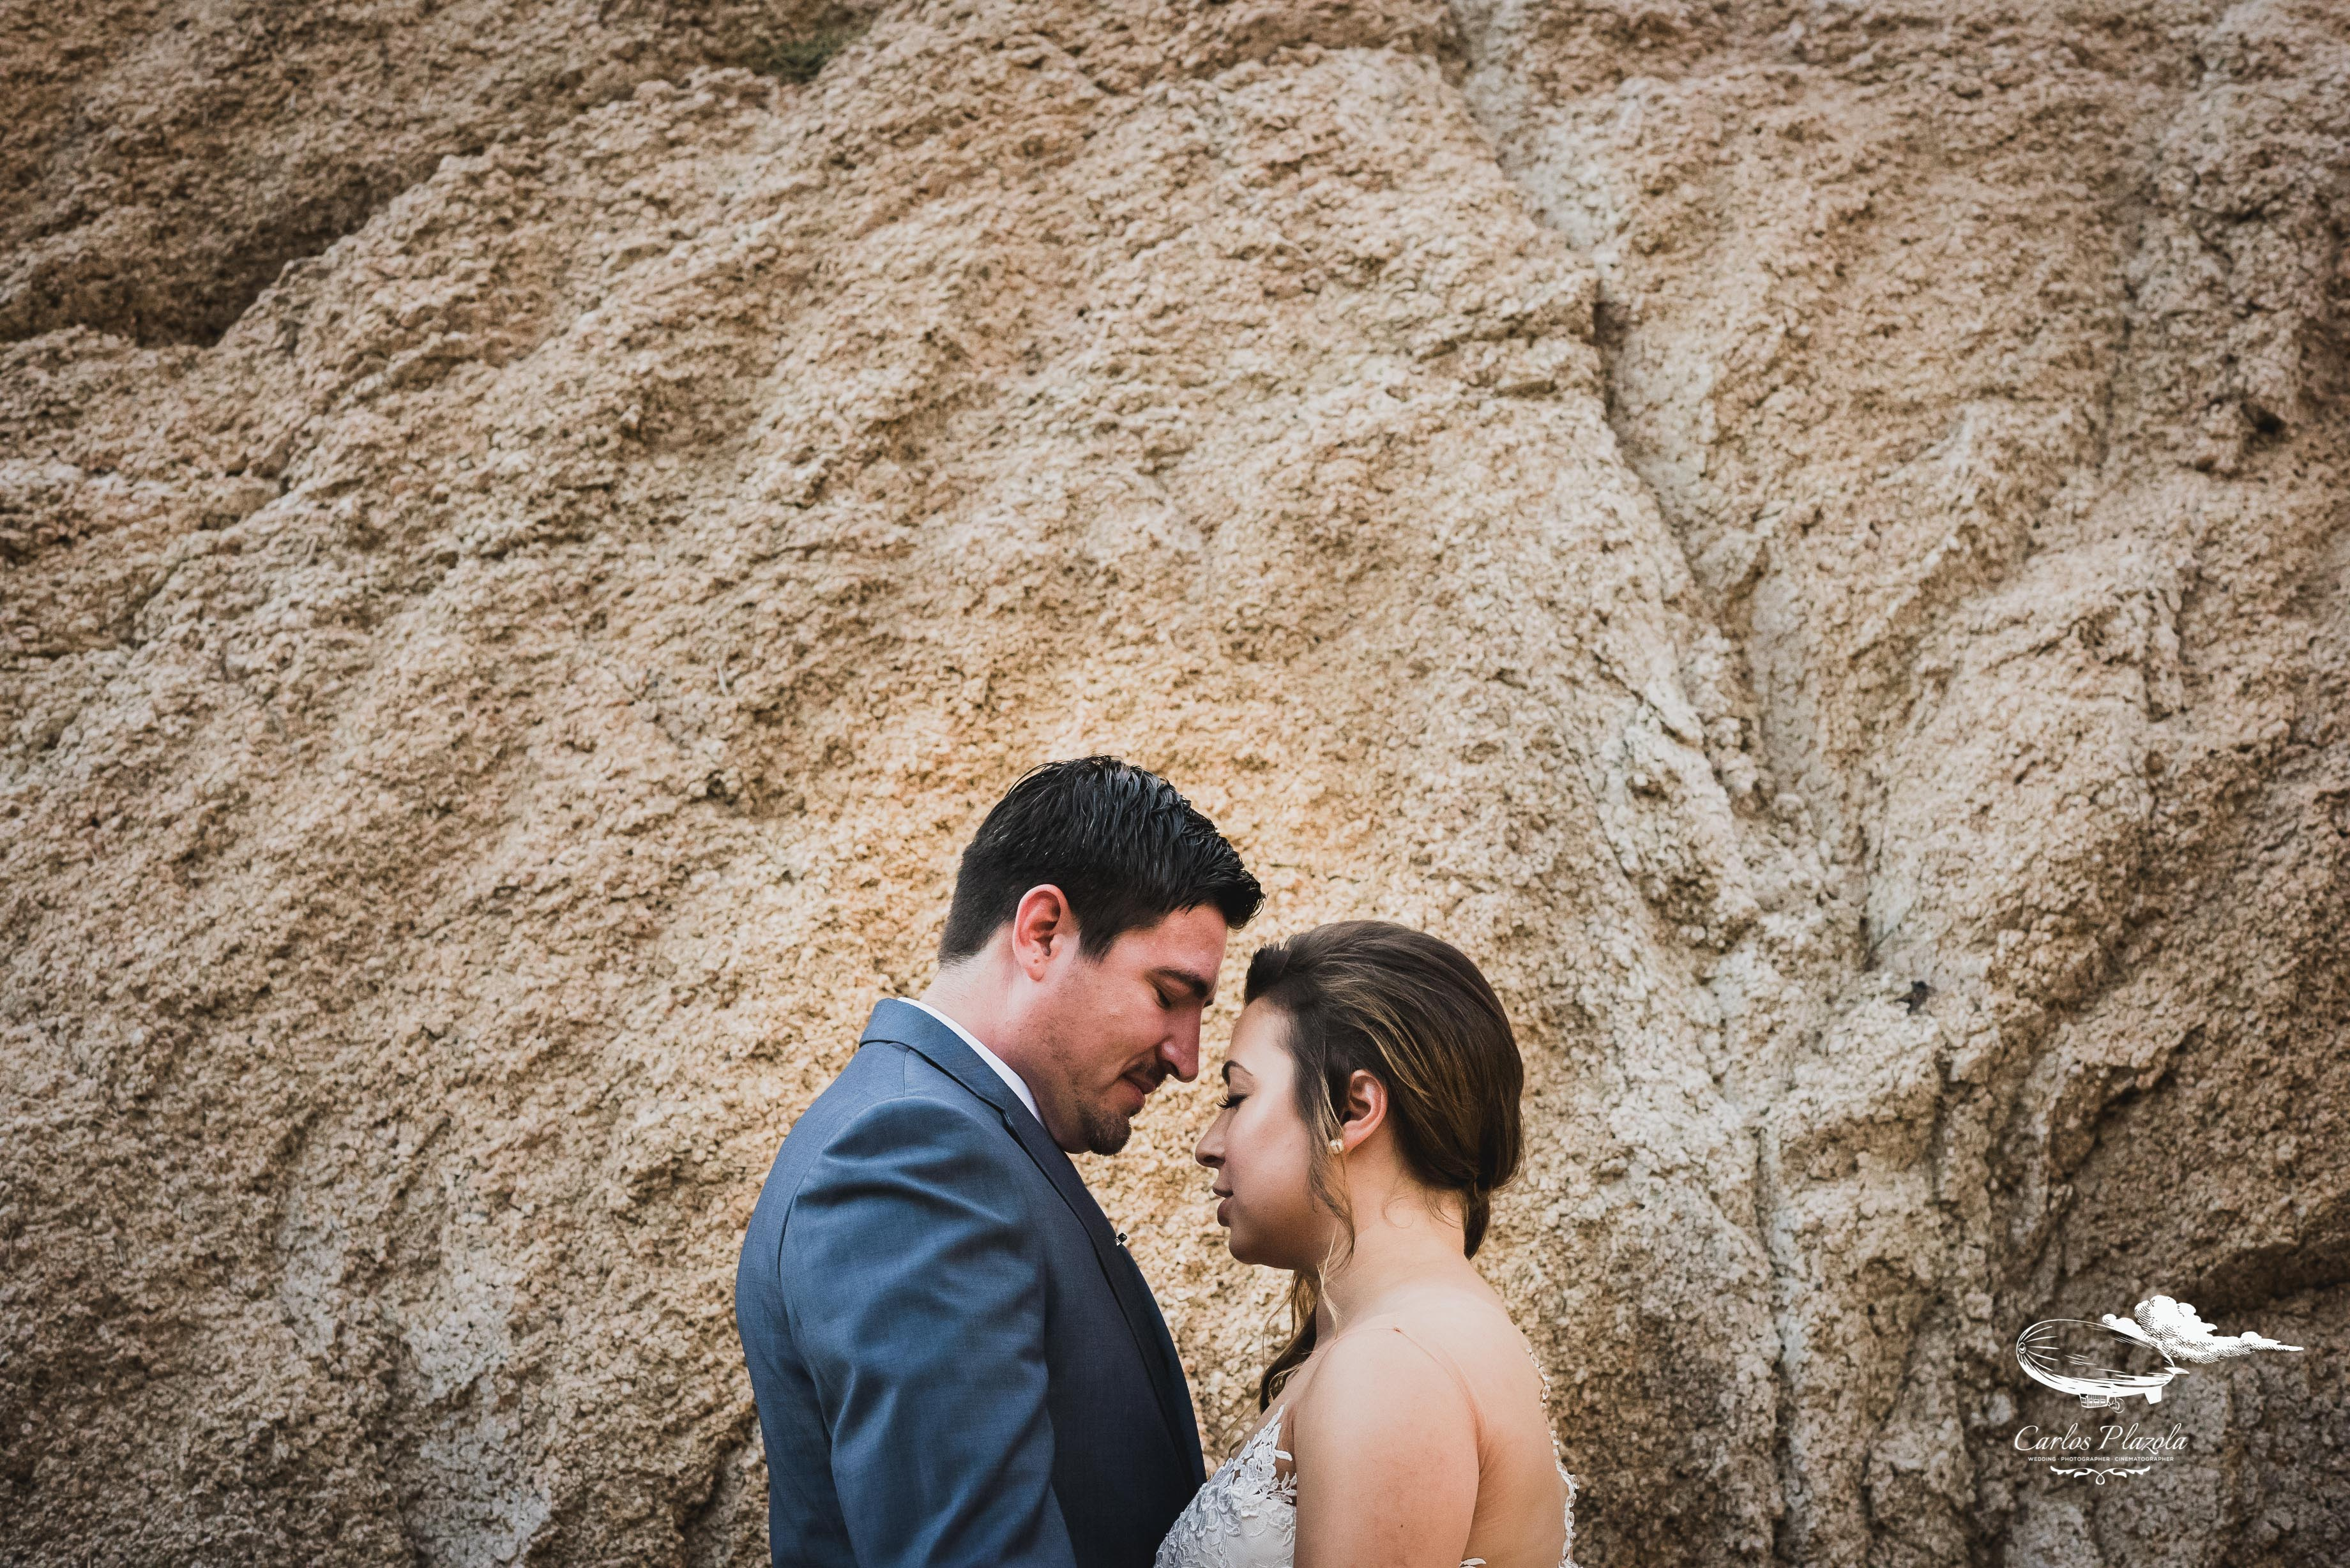 Bride and groom kissing each other and hanging out prior to the ceremony, just getting some together time. They were such a sweet couple and the ceremony took place at Wedding Venue Grand Fiesta Americana Los Cabos. Wedding planning and design by Cabo Wedding Services